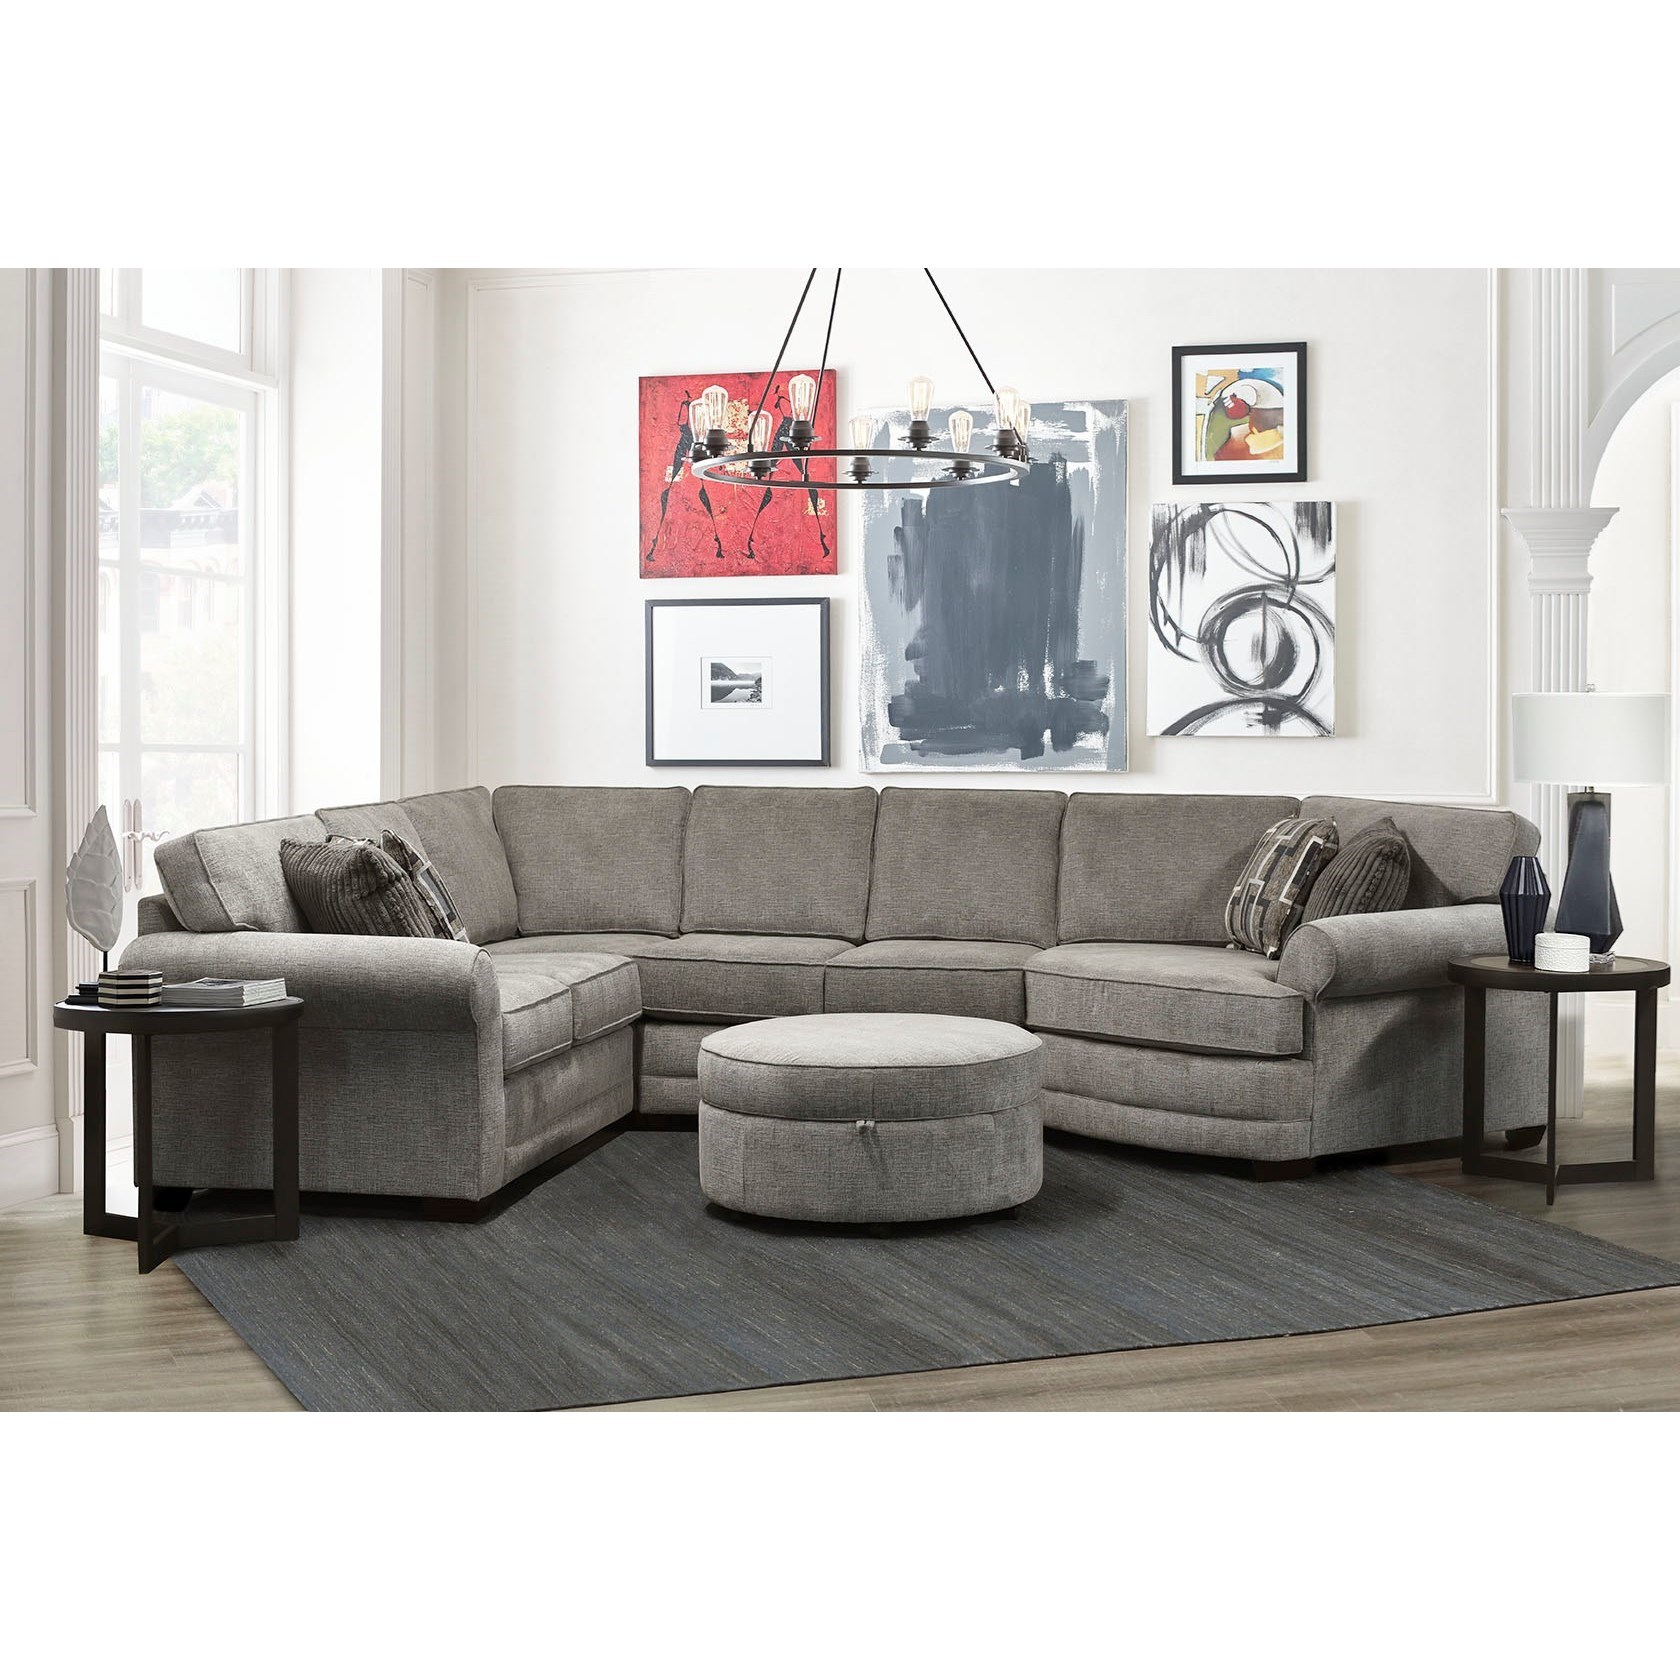 England Brantley 5 Seat Sectional Sofa with Cuddler ...